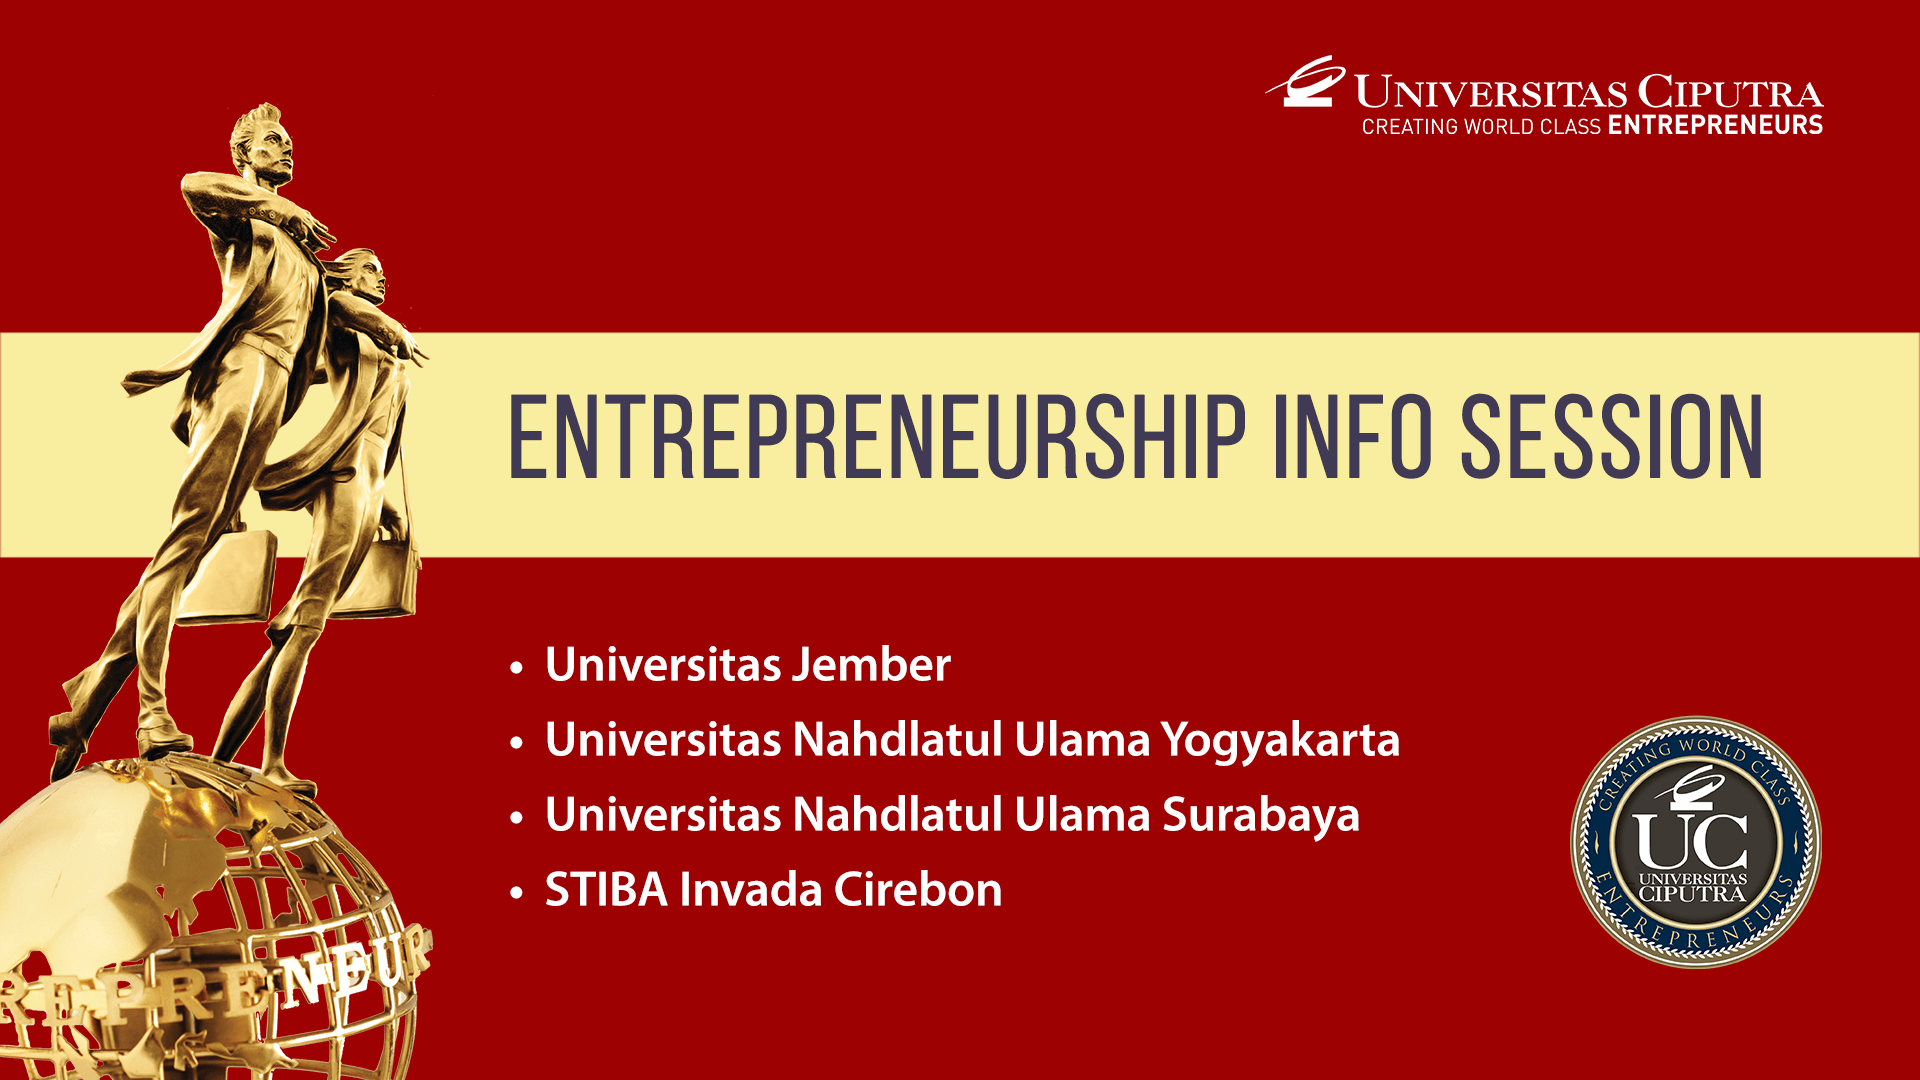 Entrepreneurship Info Session